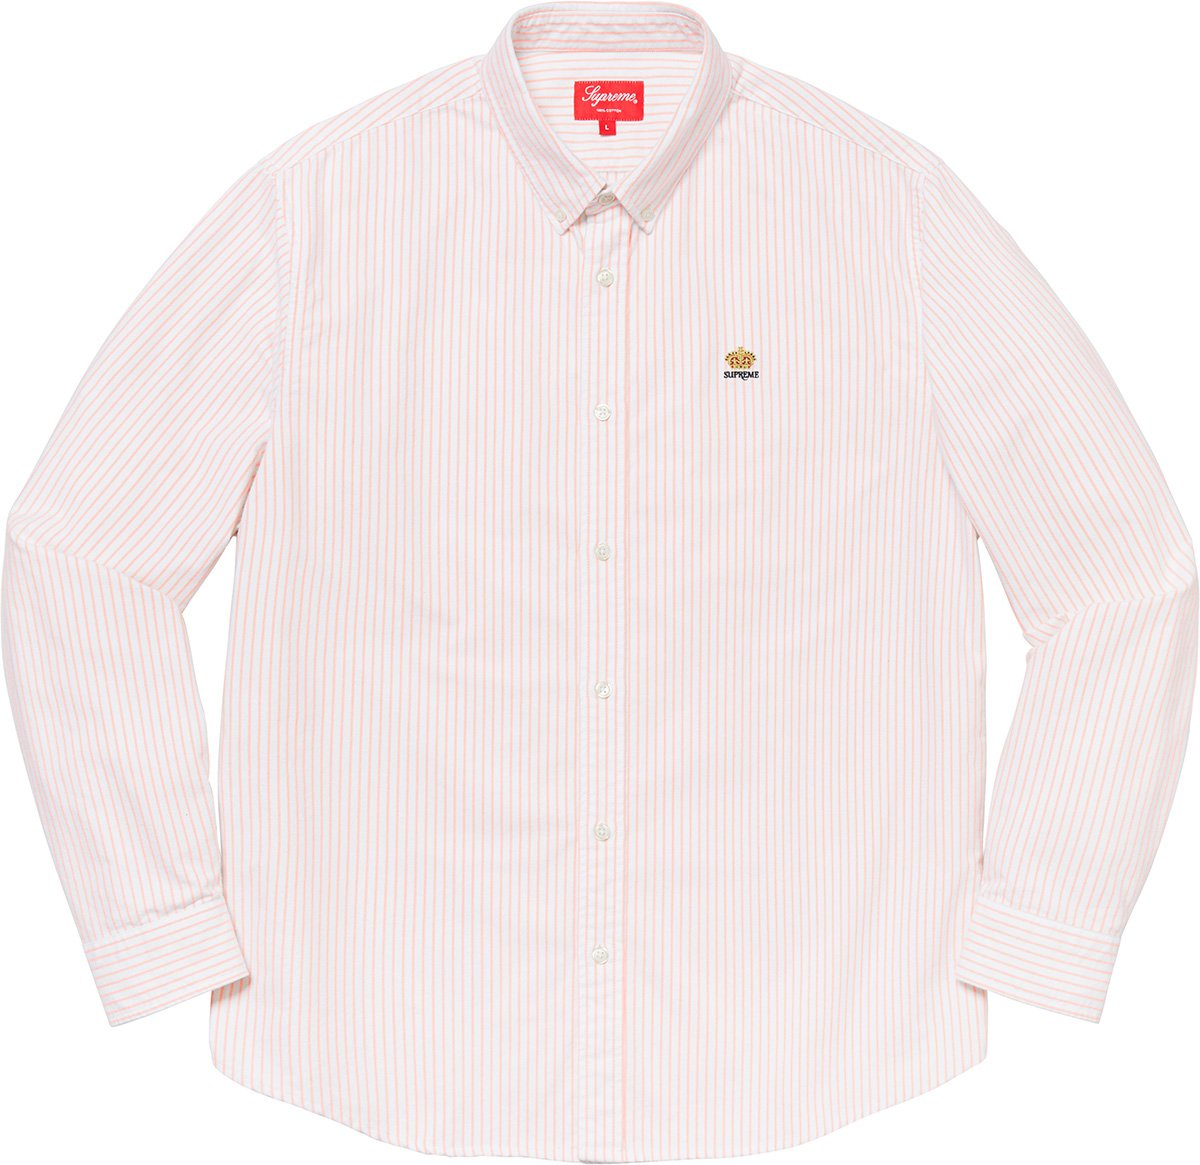 supreme-19aw-19fw-fall-winter-flannel-oxford-shirt